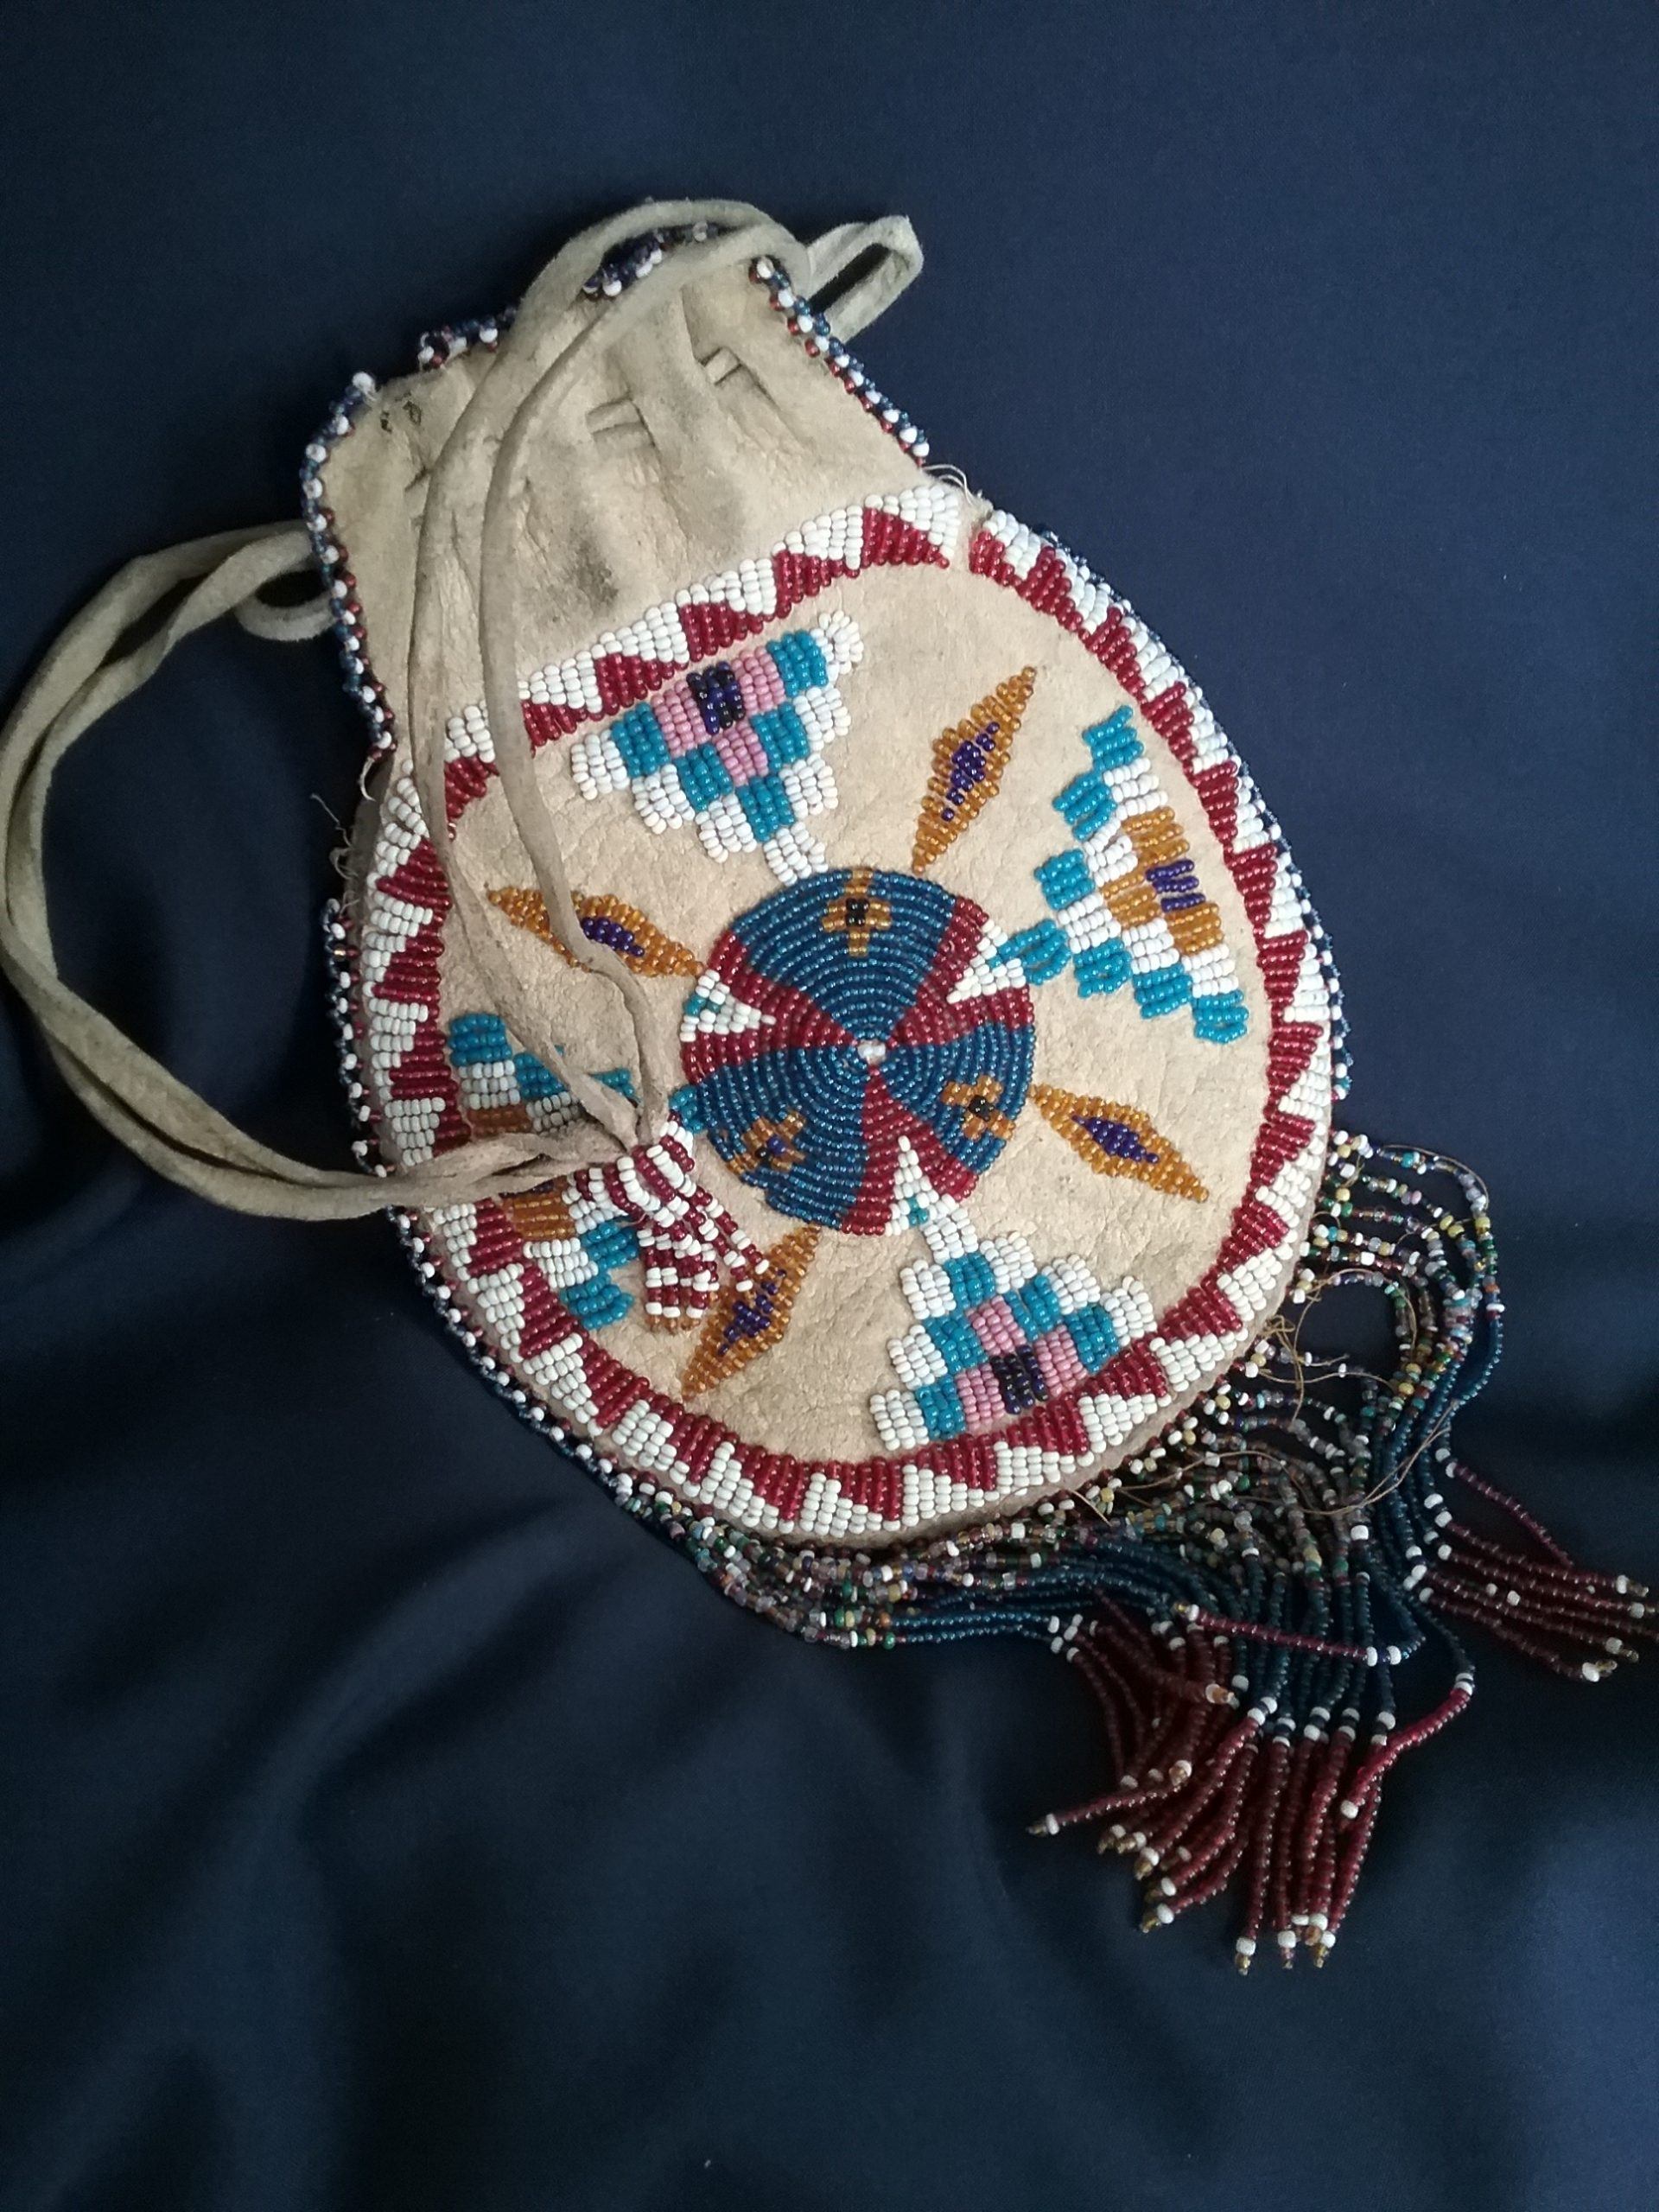 Beaded leather bag (front) from Native American tribe of unknown origin. Donated by Helen Ray. MCHS collections, #1984.14.1.